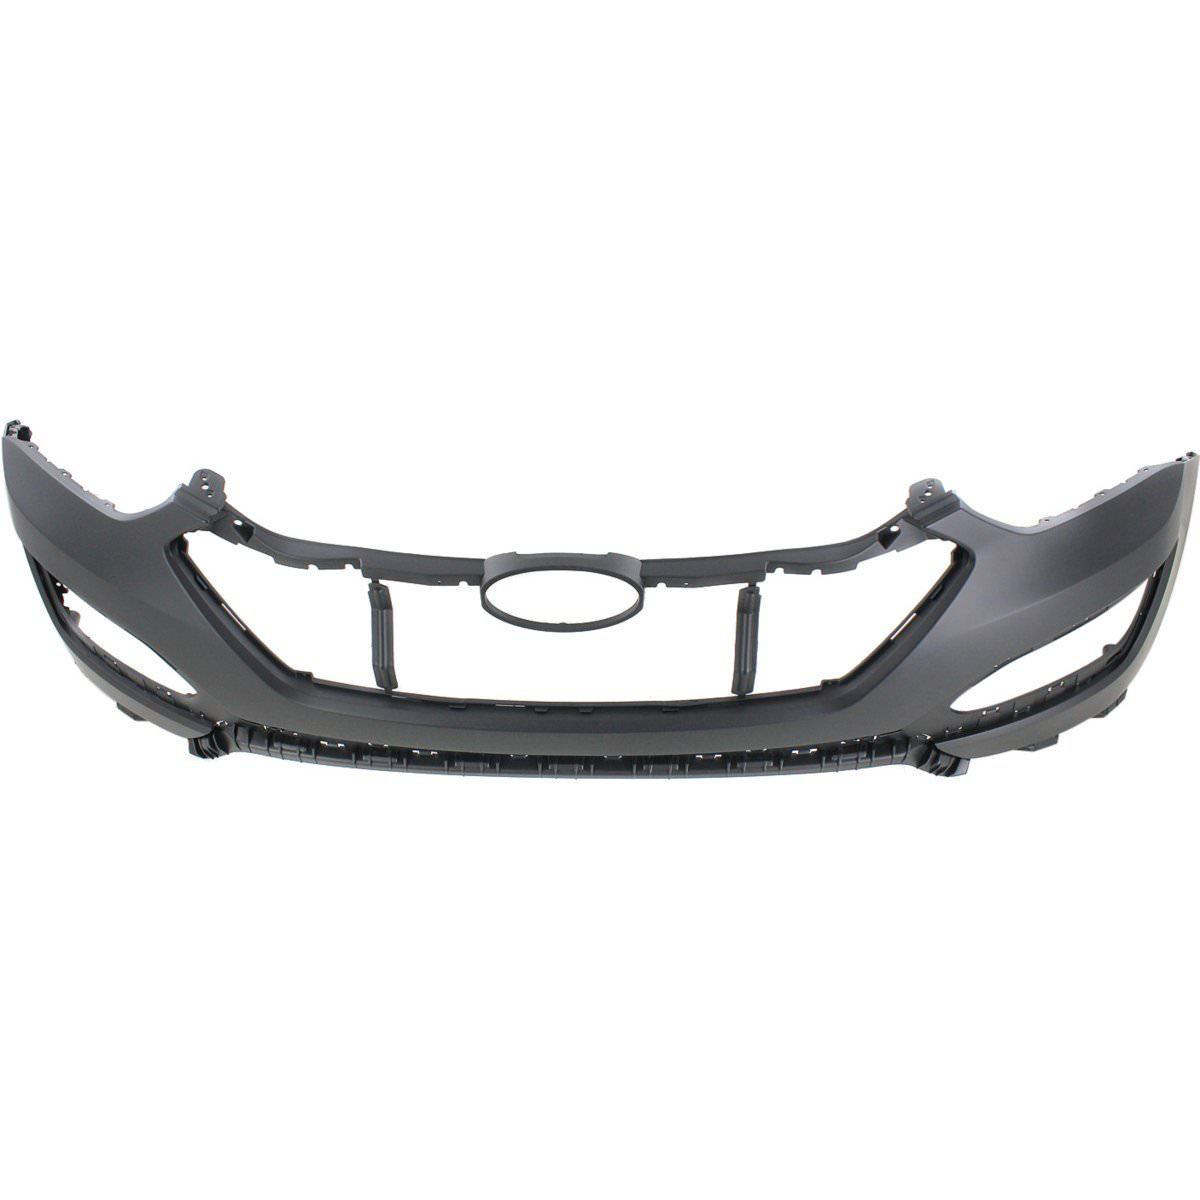 2013-2016 HYUNDAI SANTA FE Front Bumper Cover Upper SPORT  w/o Parking Assist Painted to Match